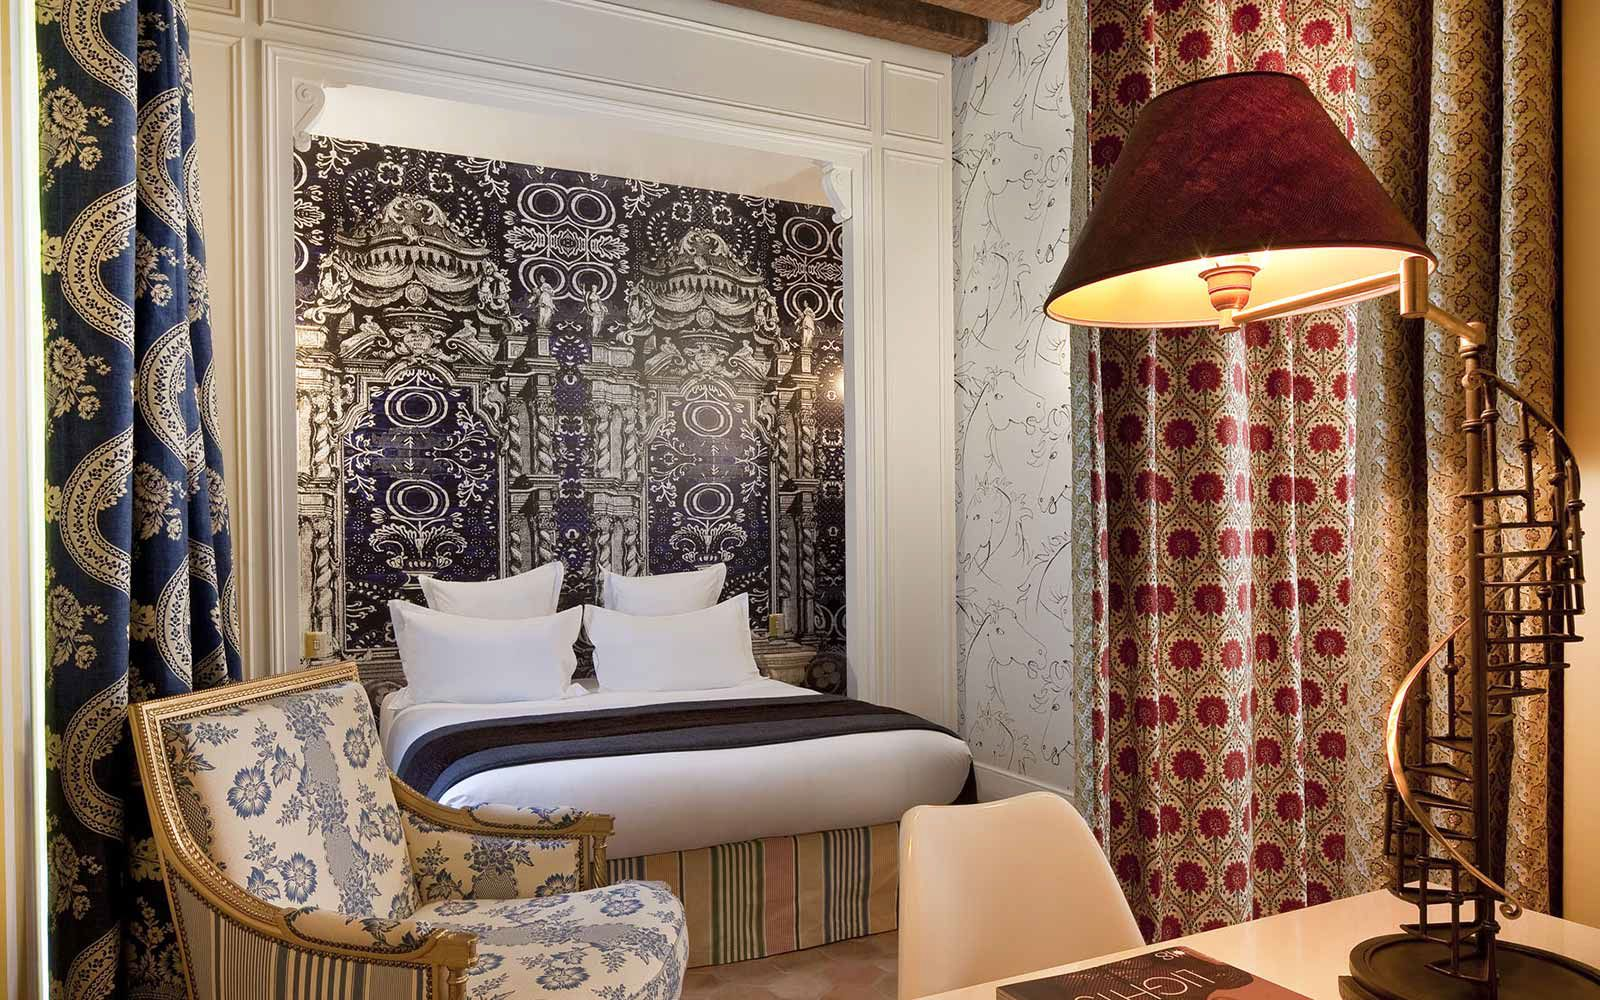 Planning A Luxury stay In Paris? Try The Hotel Petit Moulin (7)